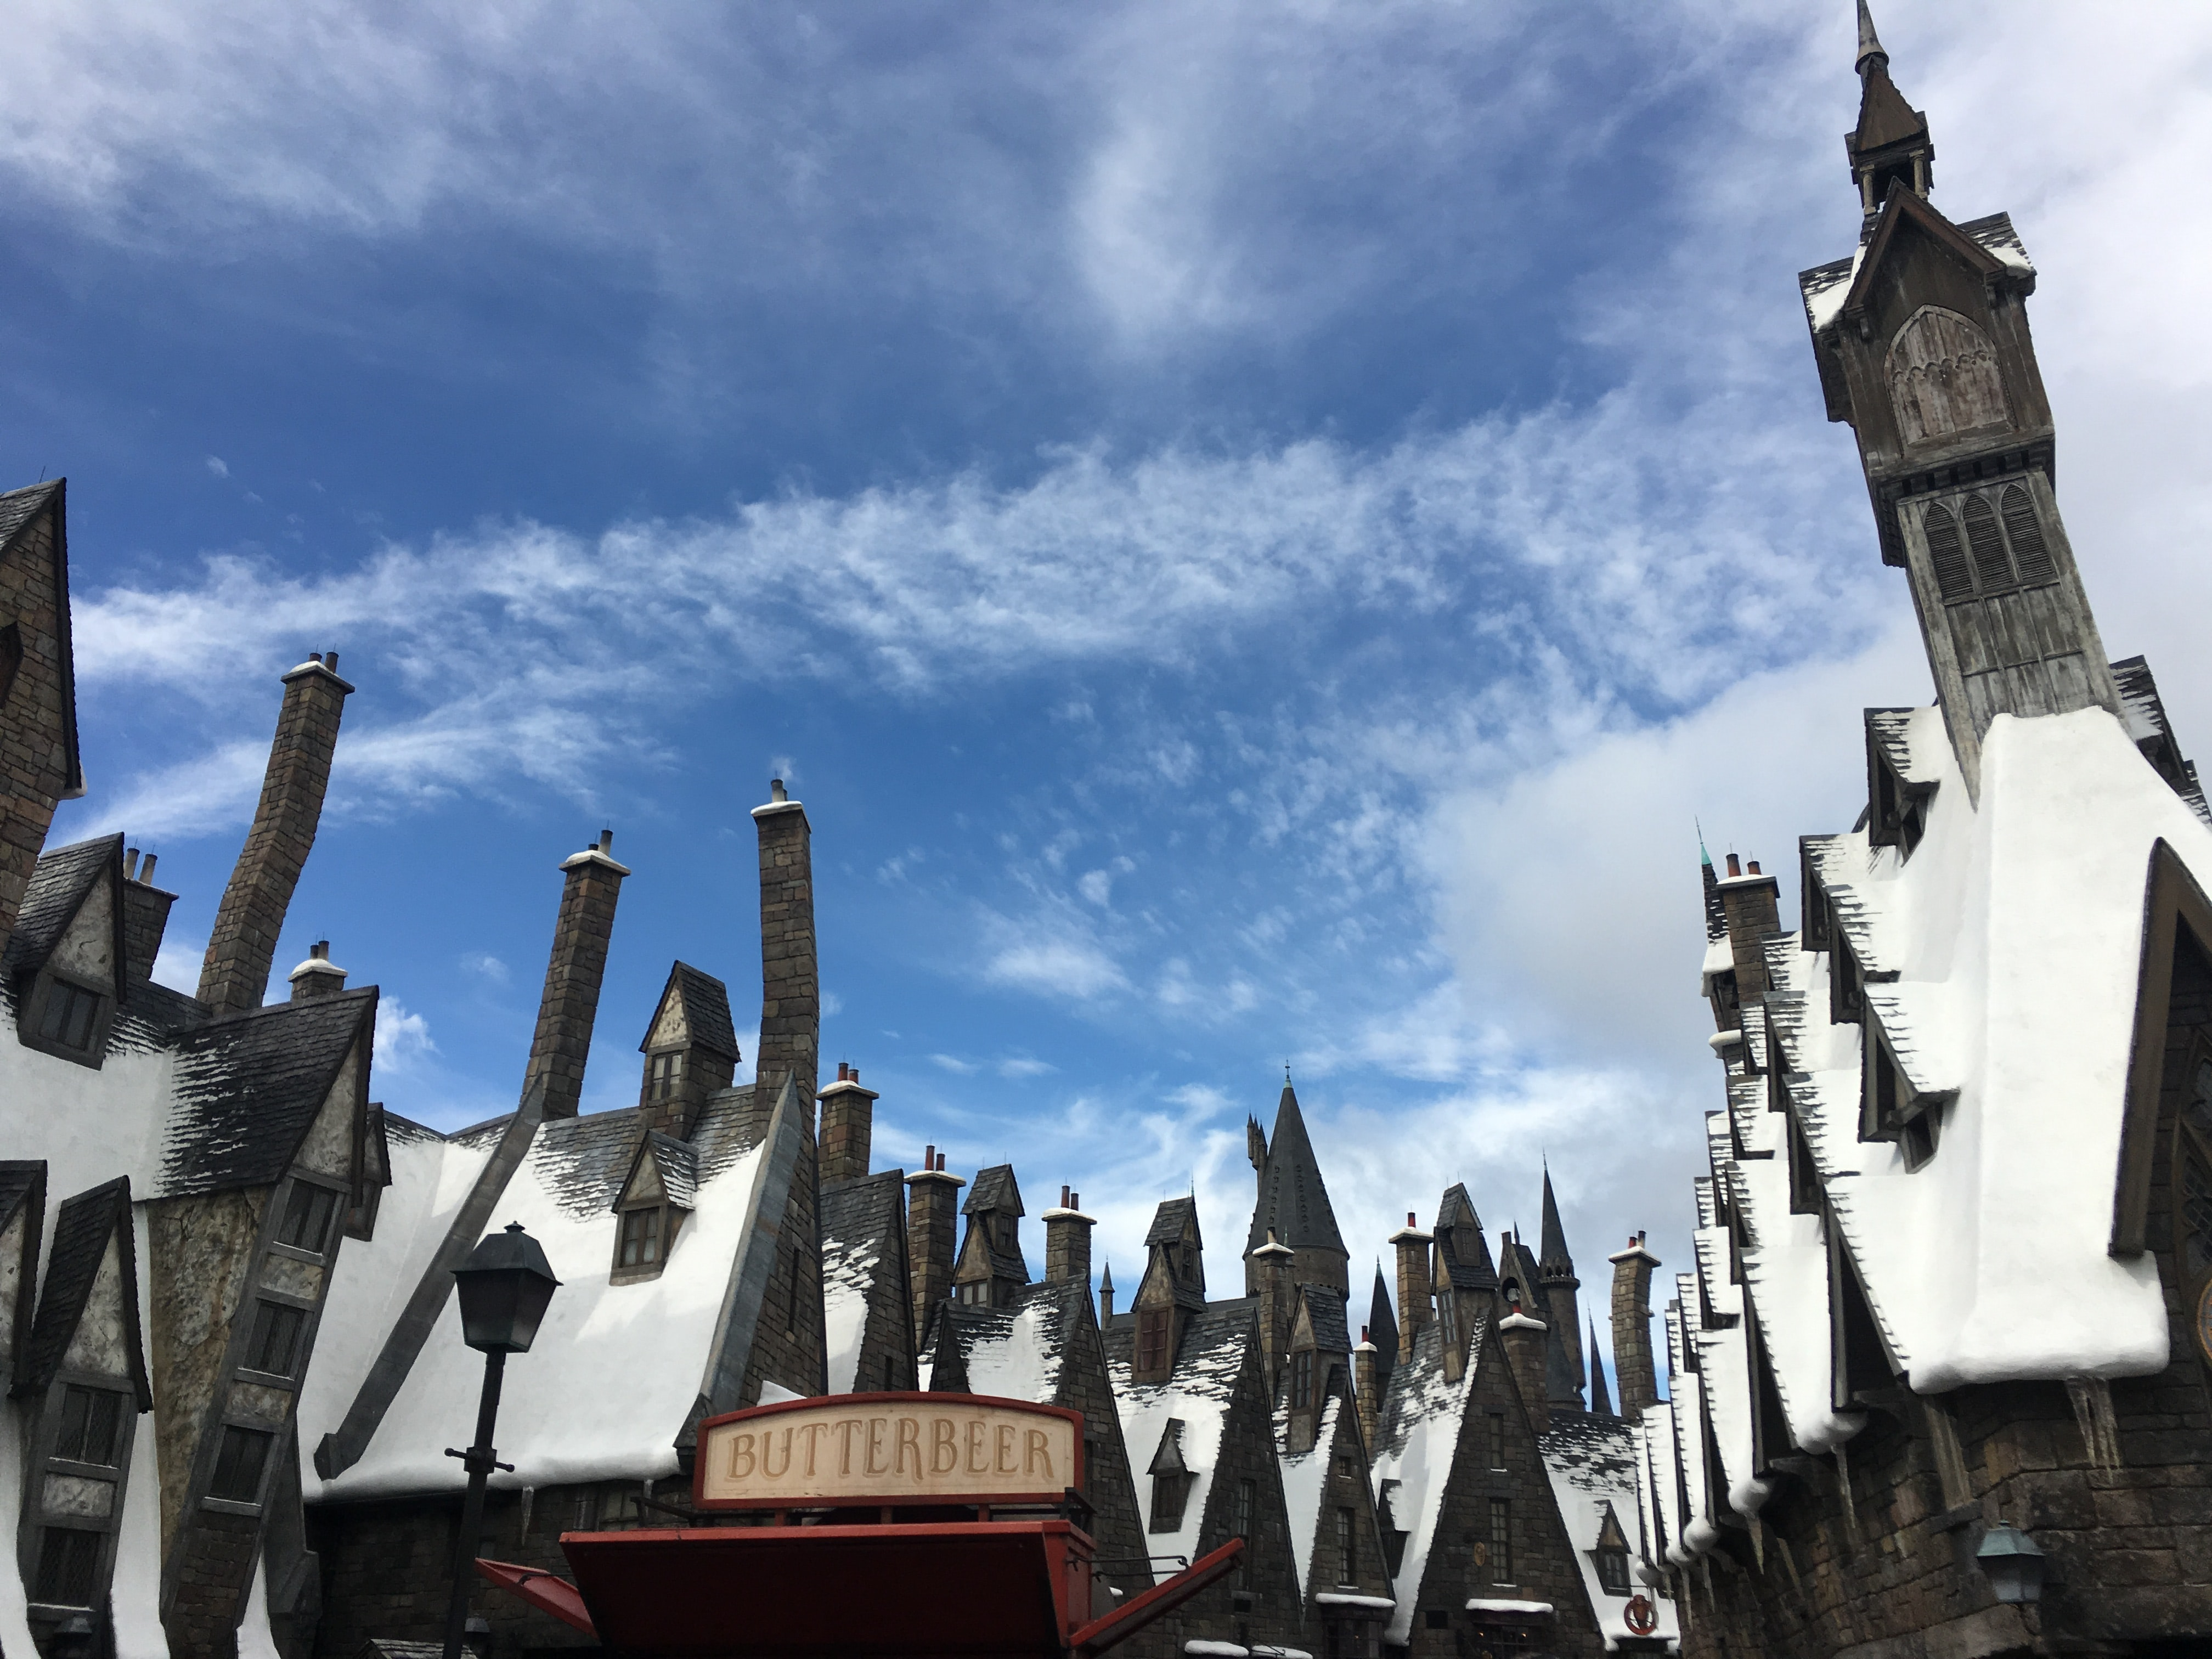 A view of multiple houses with chimneys with butterbeer sign in the middle in Southwest Orlando, Orlando, Florida, United States